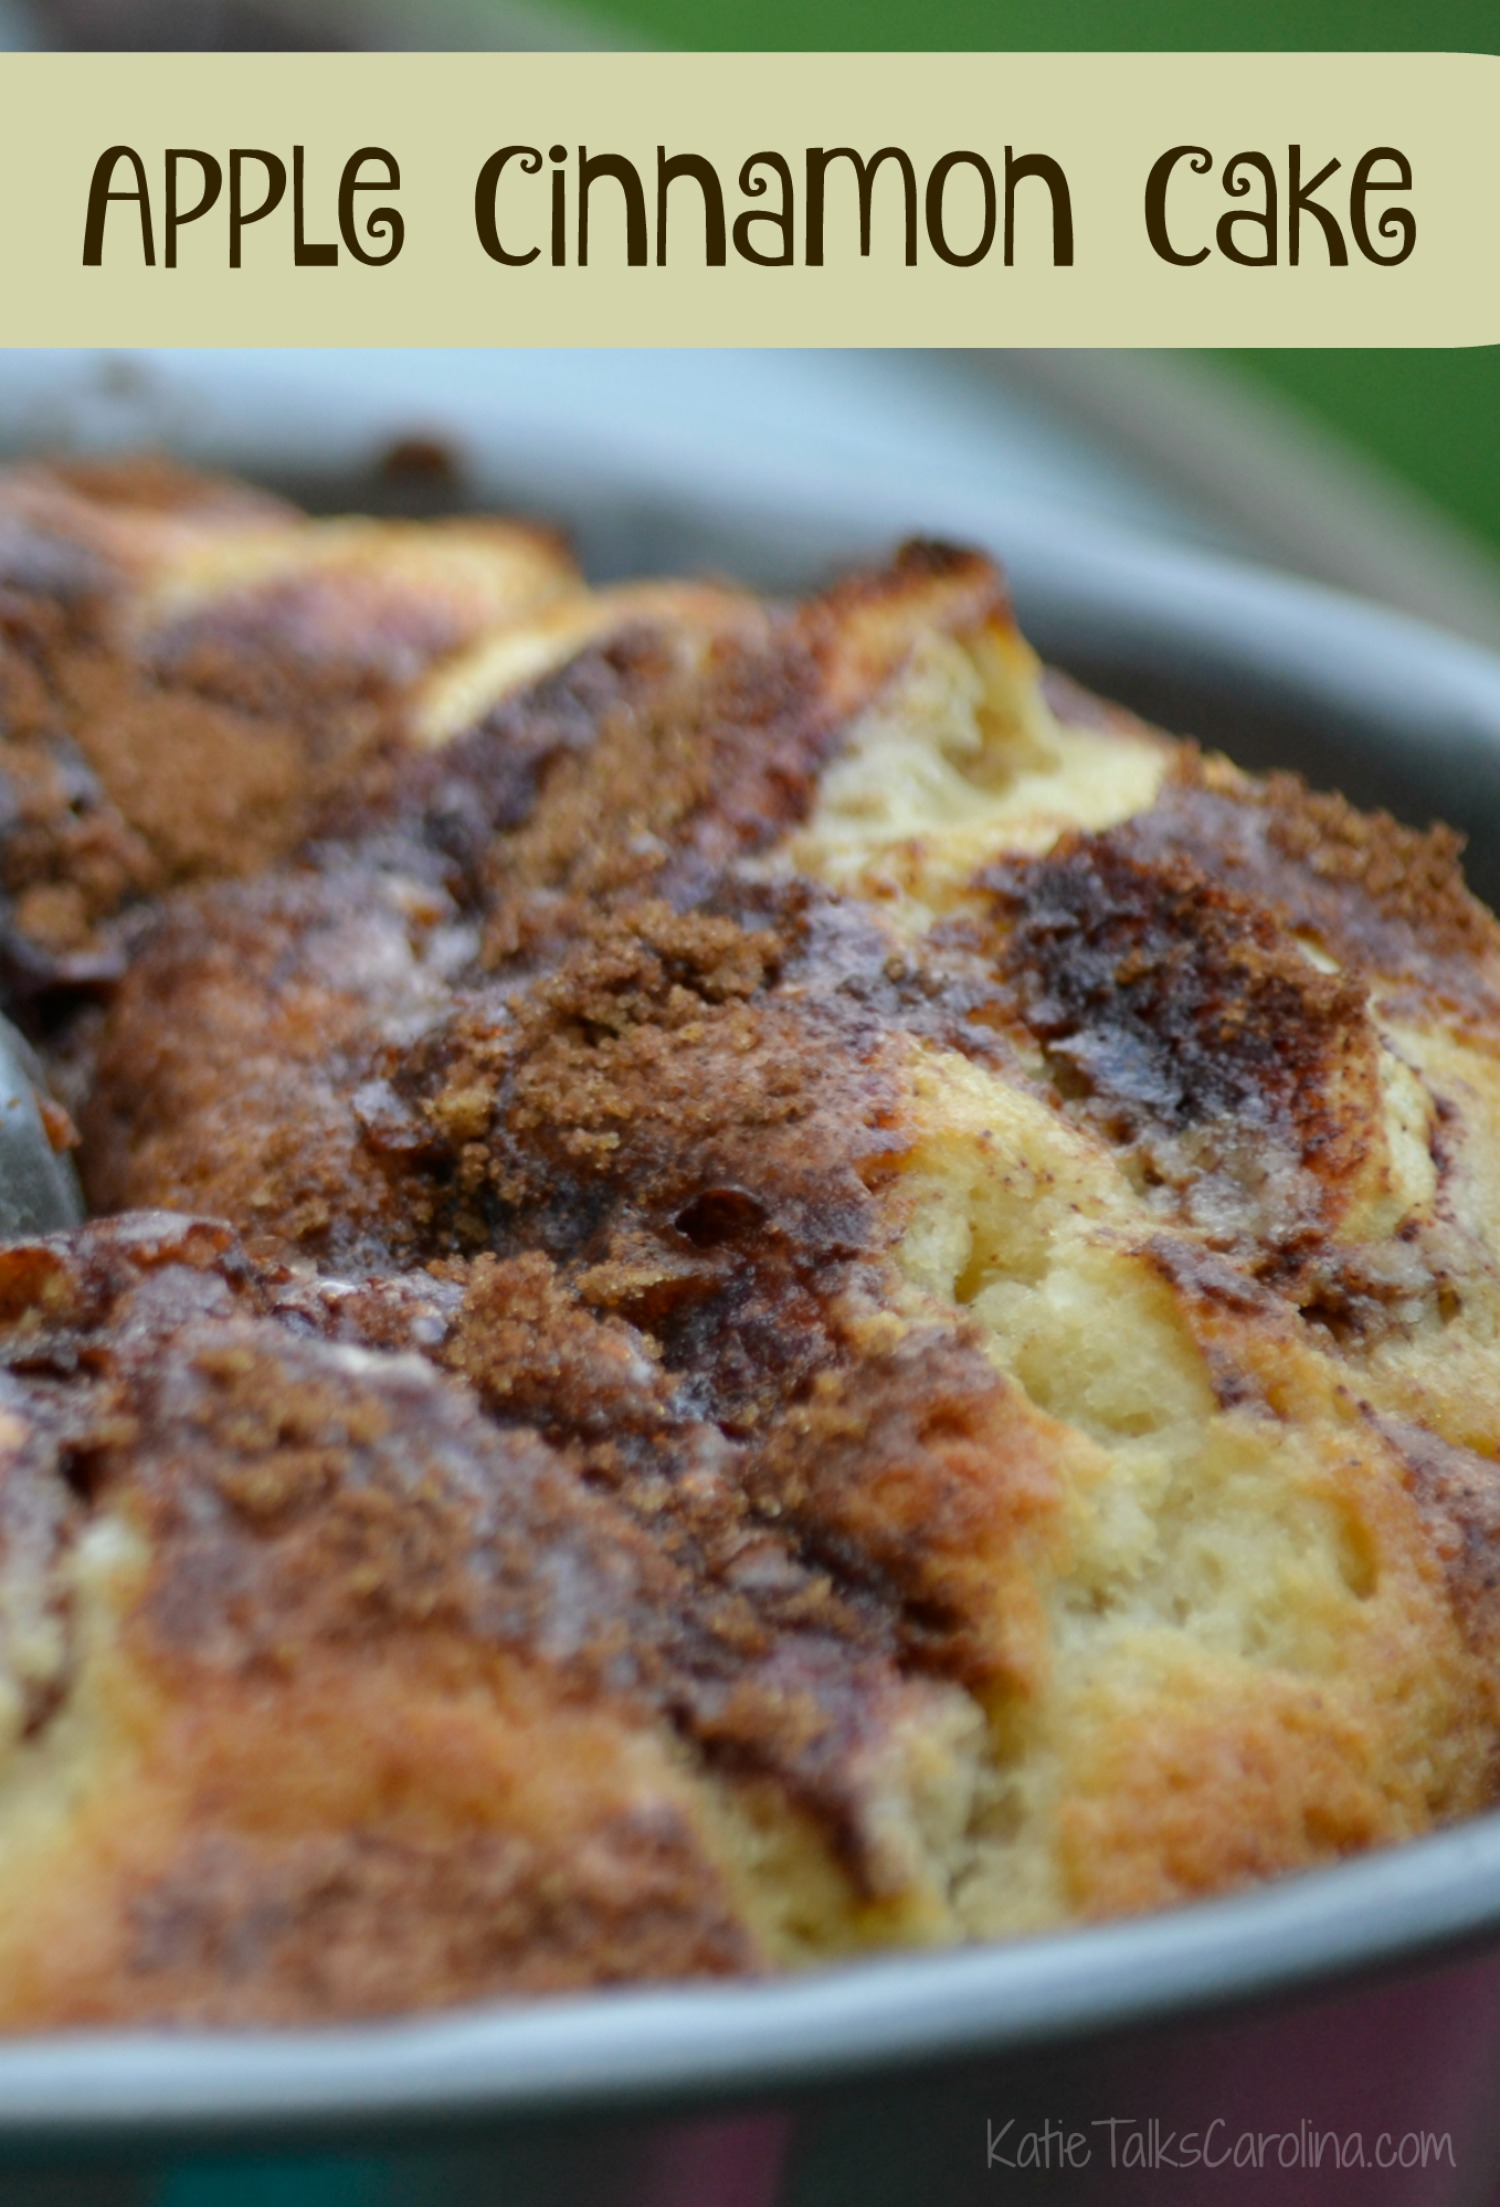 Apple Cinnamon Cake Recipe